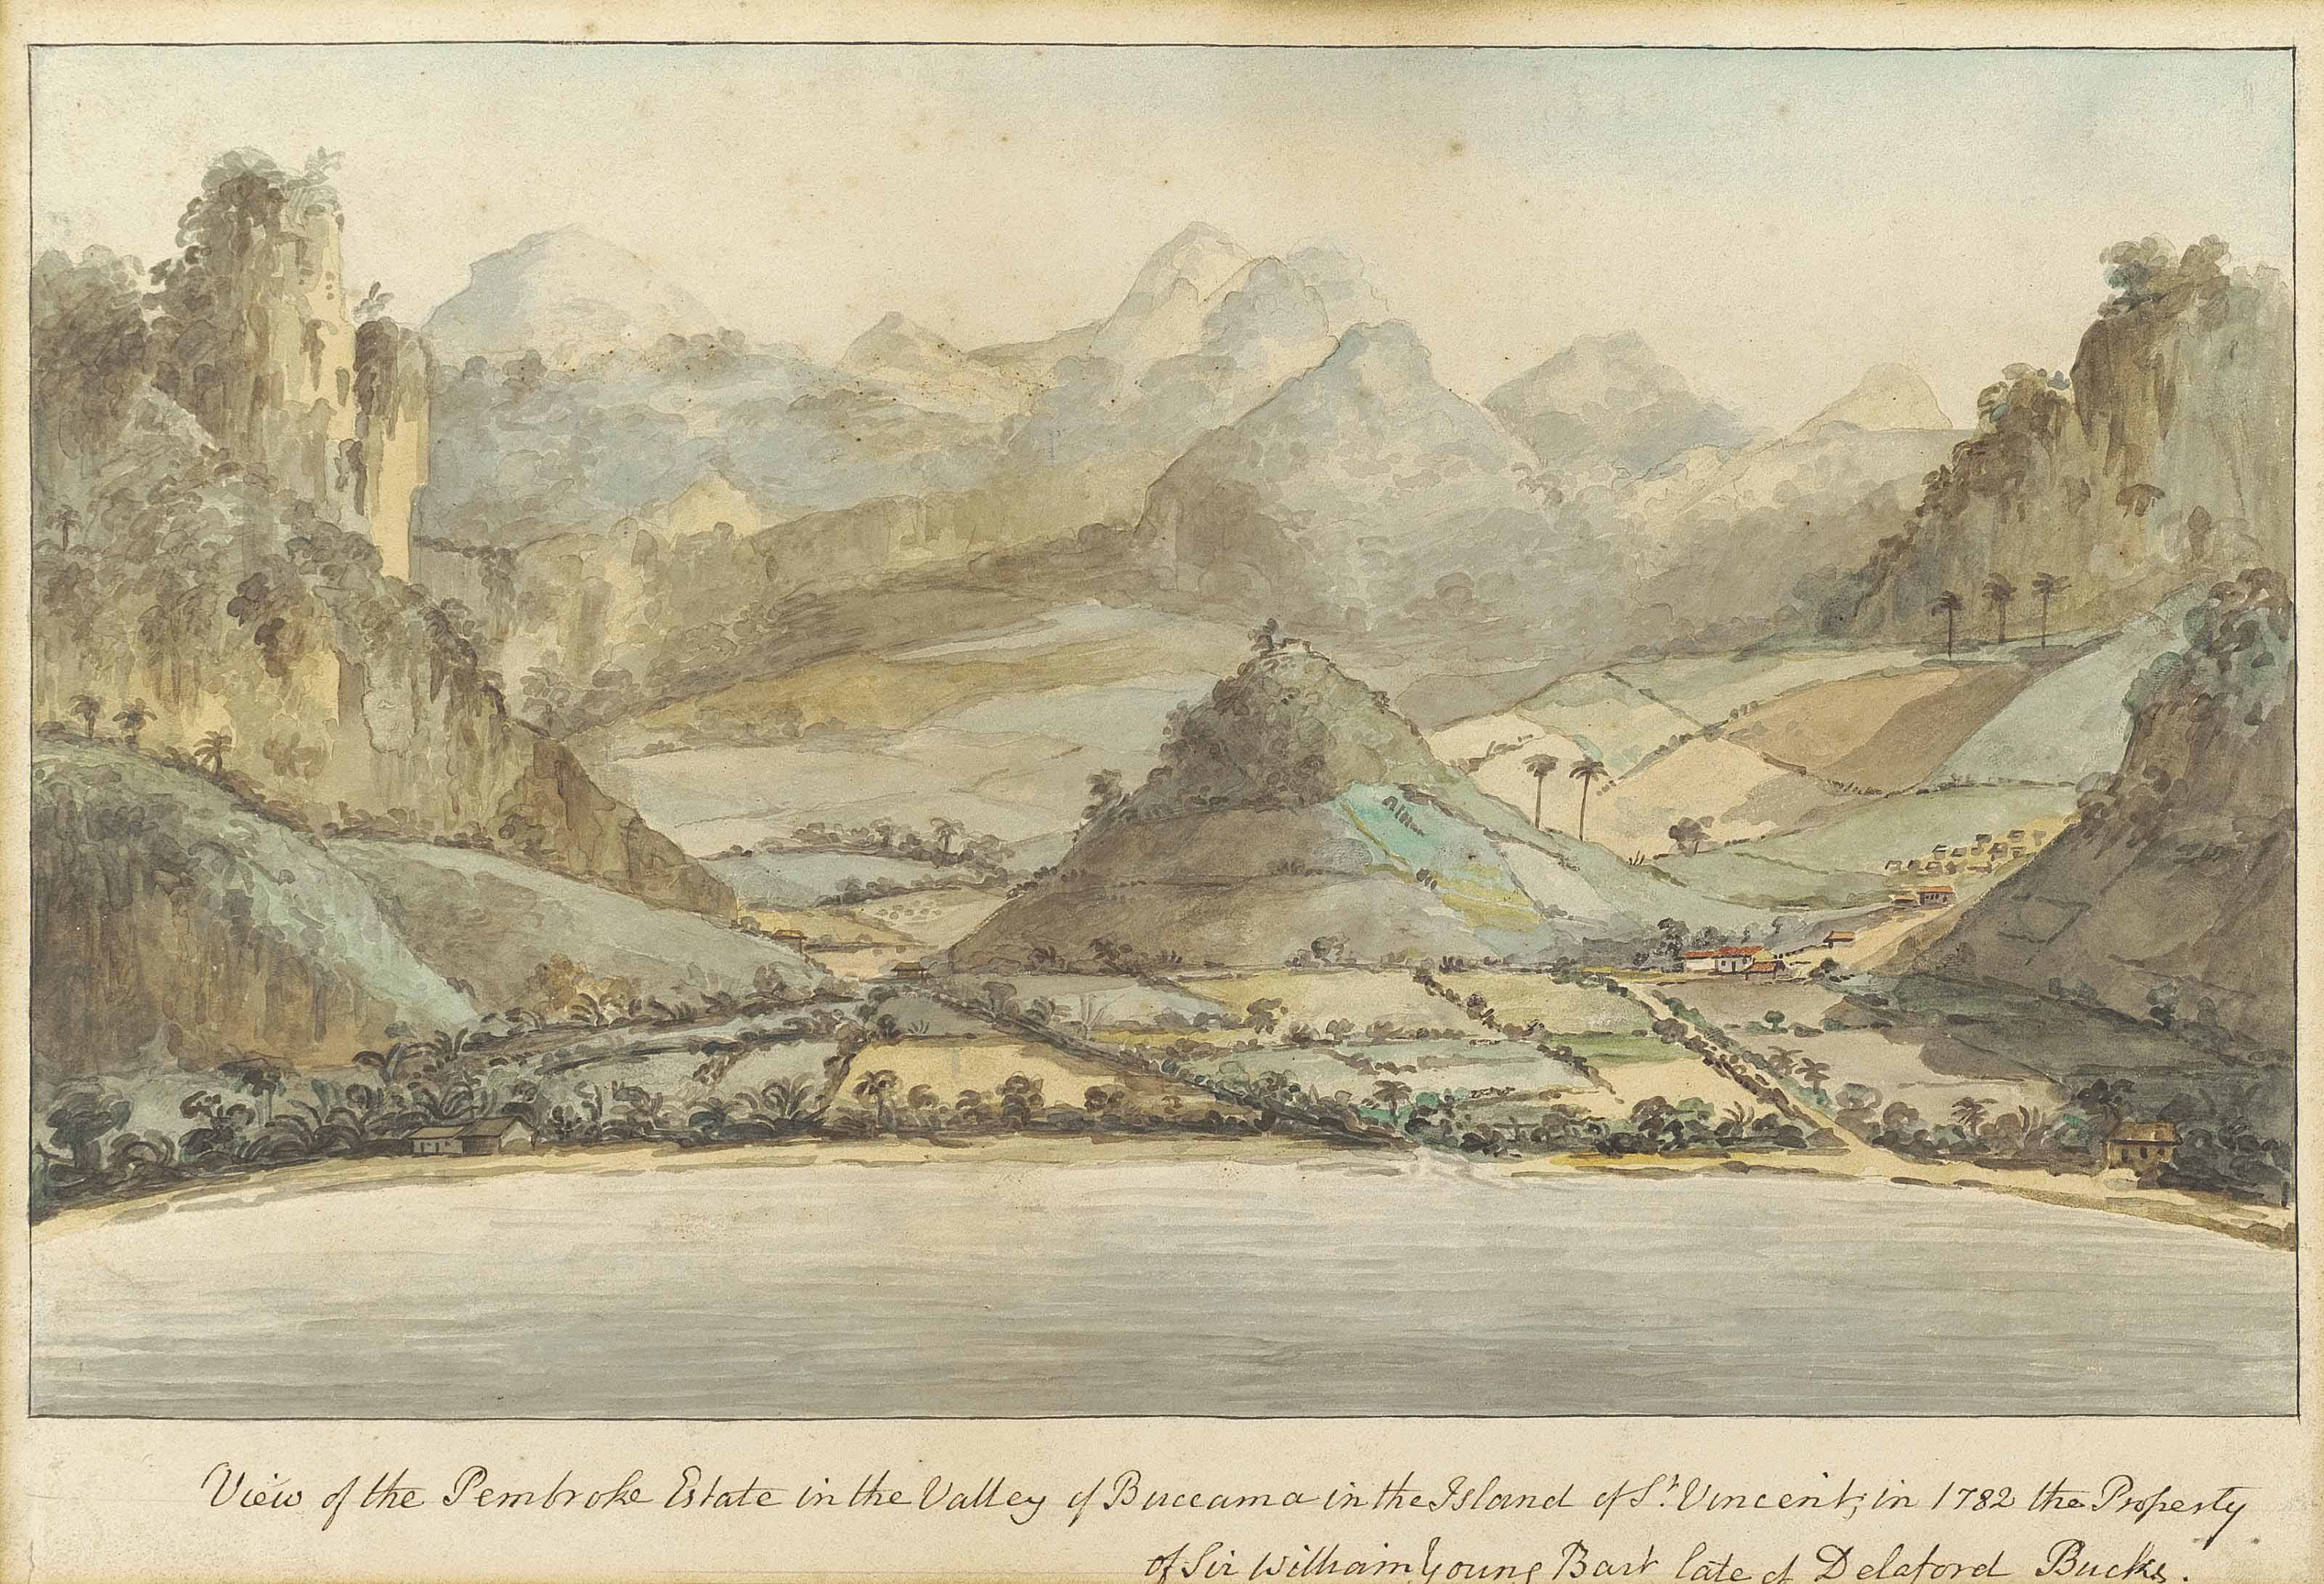 View of the Pembroke Estate in the Valley of Buccama in the Island of St. Vincent, in 1782 the Property of Sir William Young Bart late of Delaford Bucks.